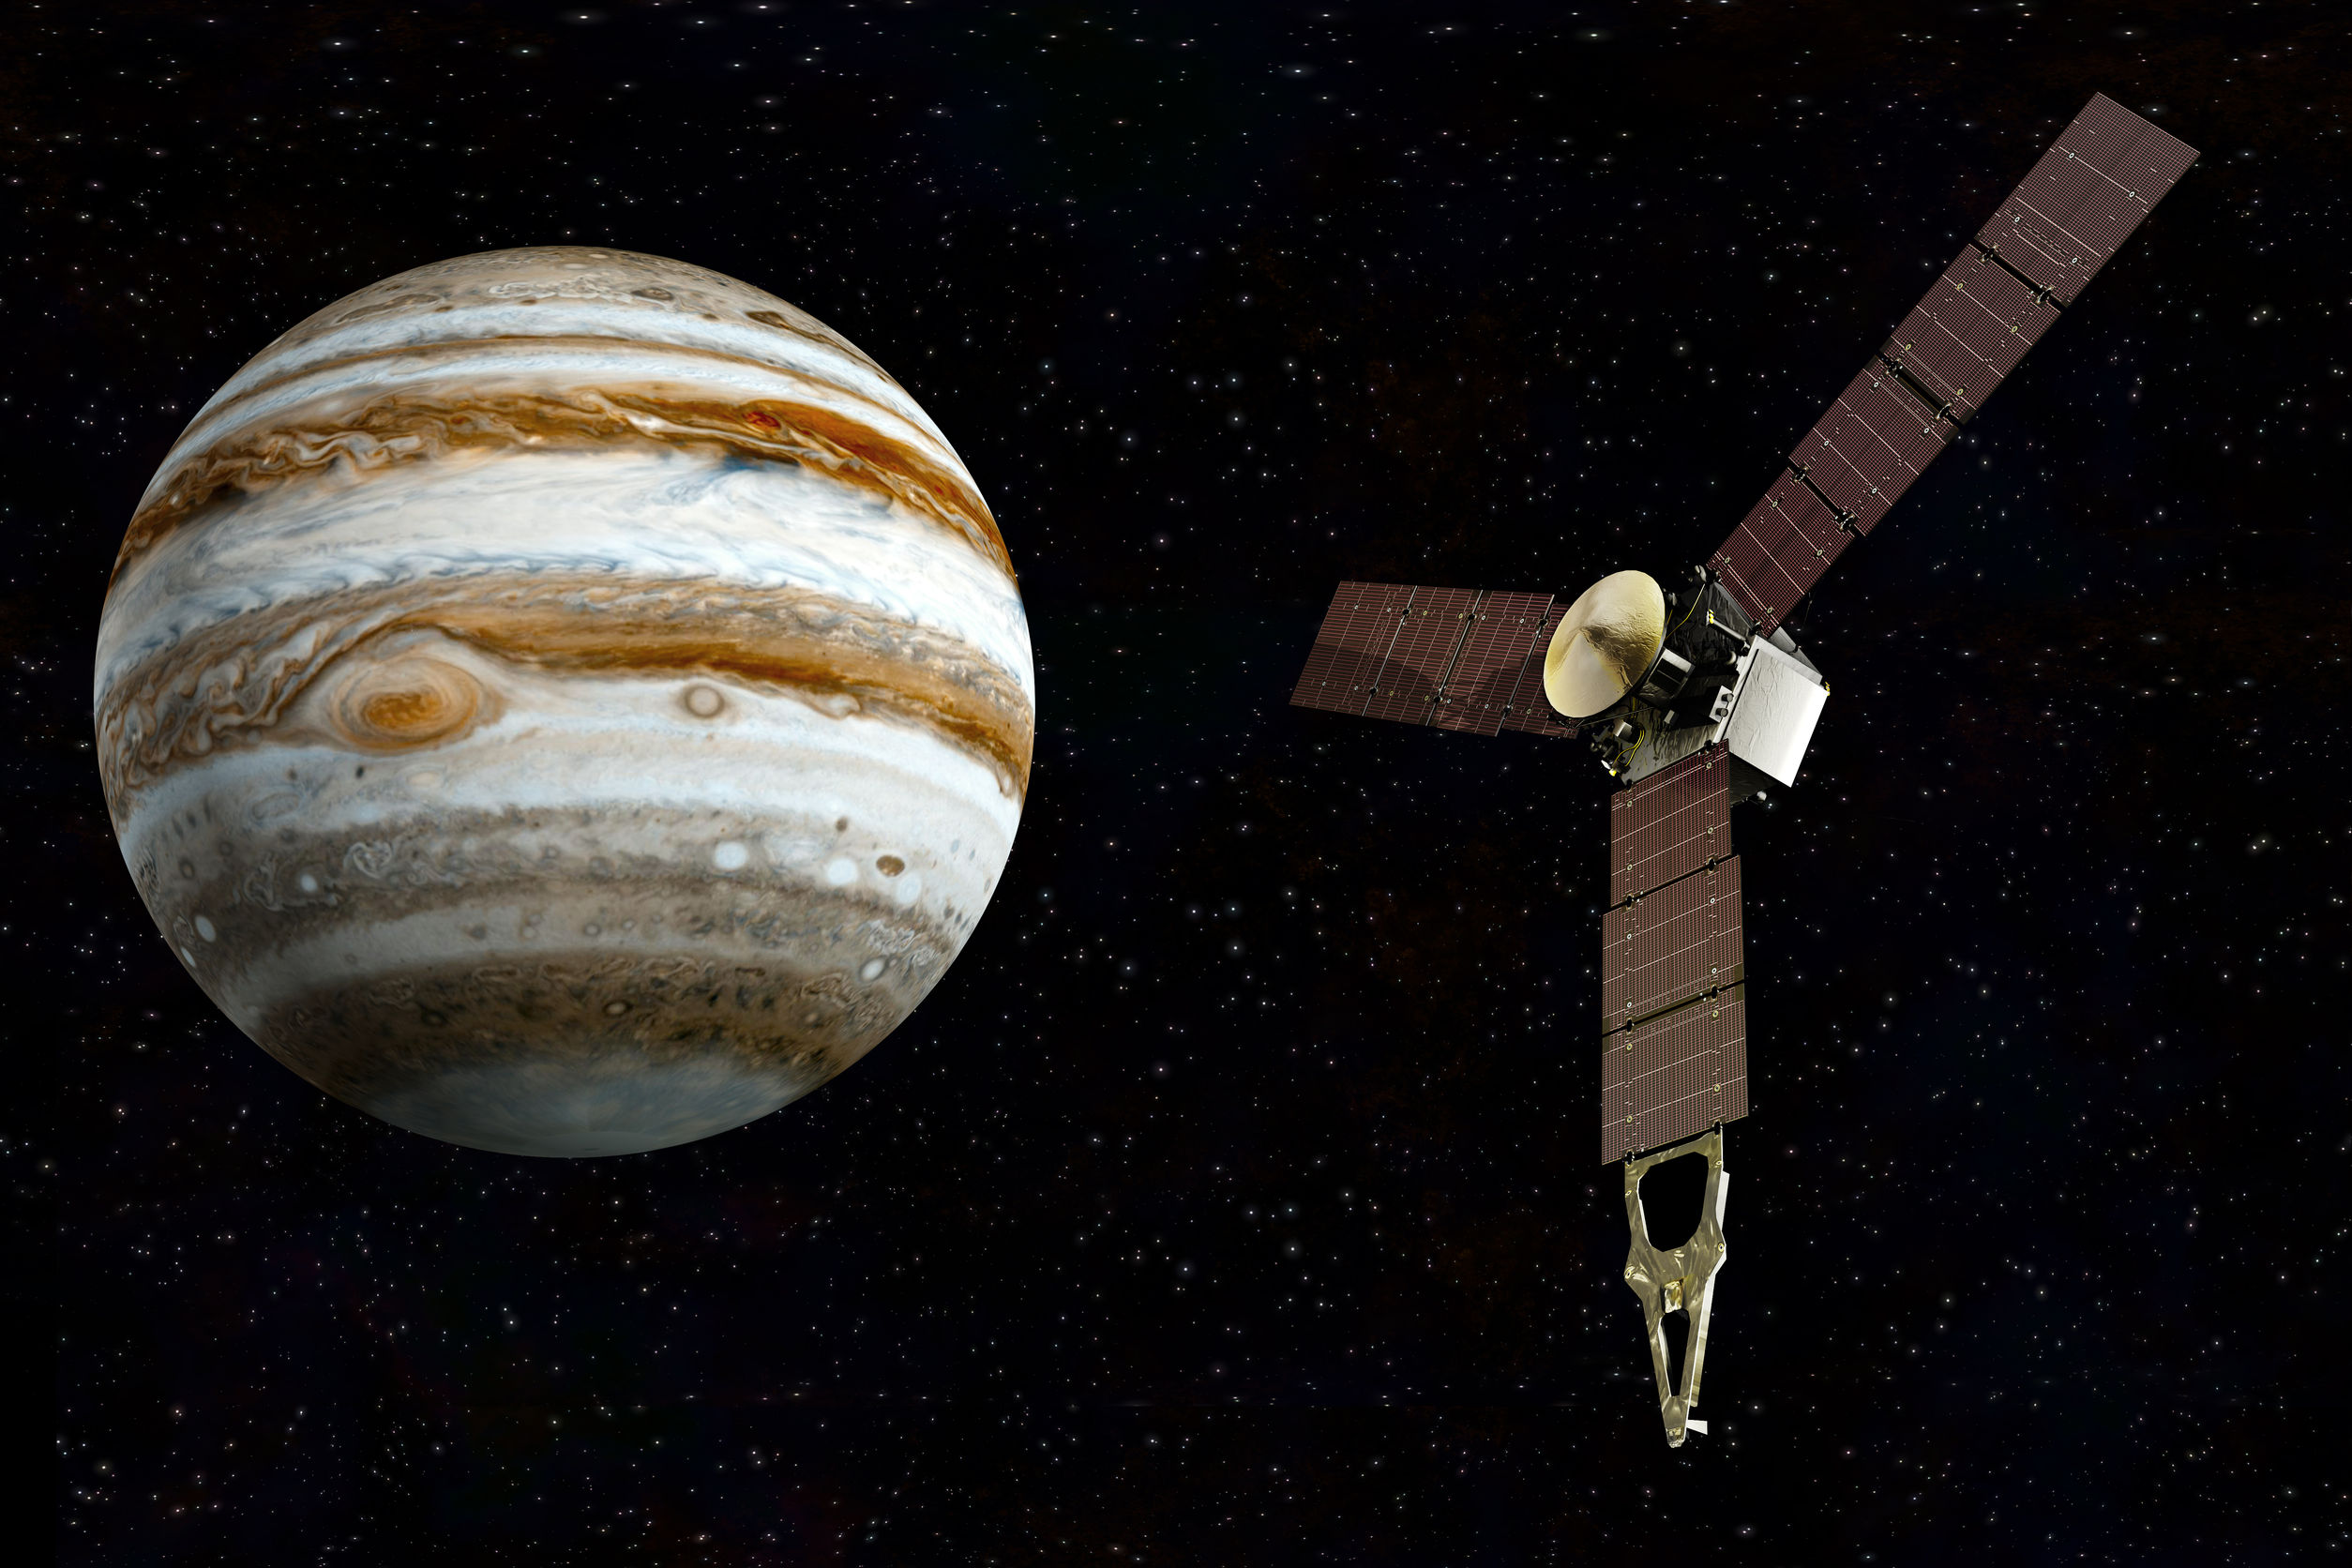 34769886 - jupiter and satellite juno